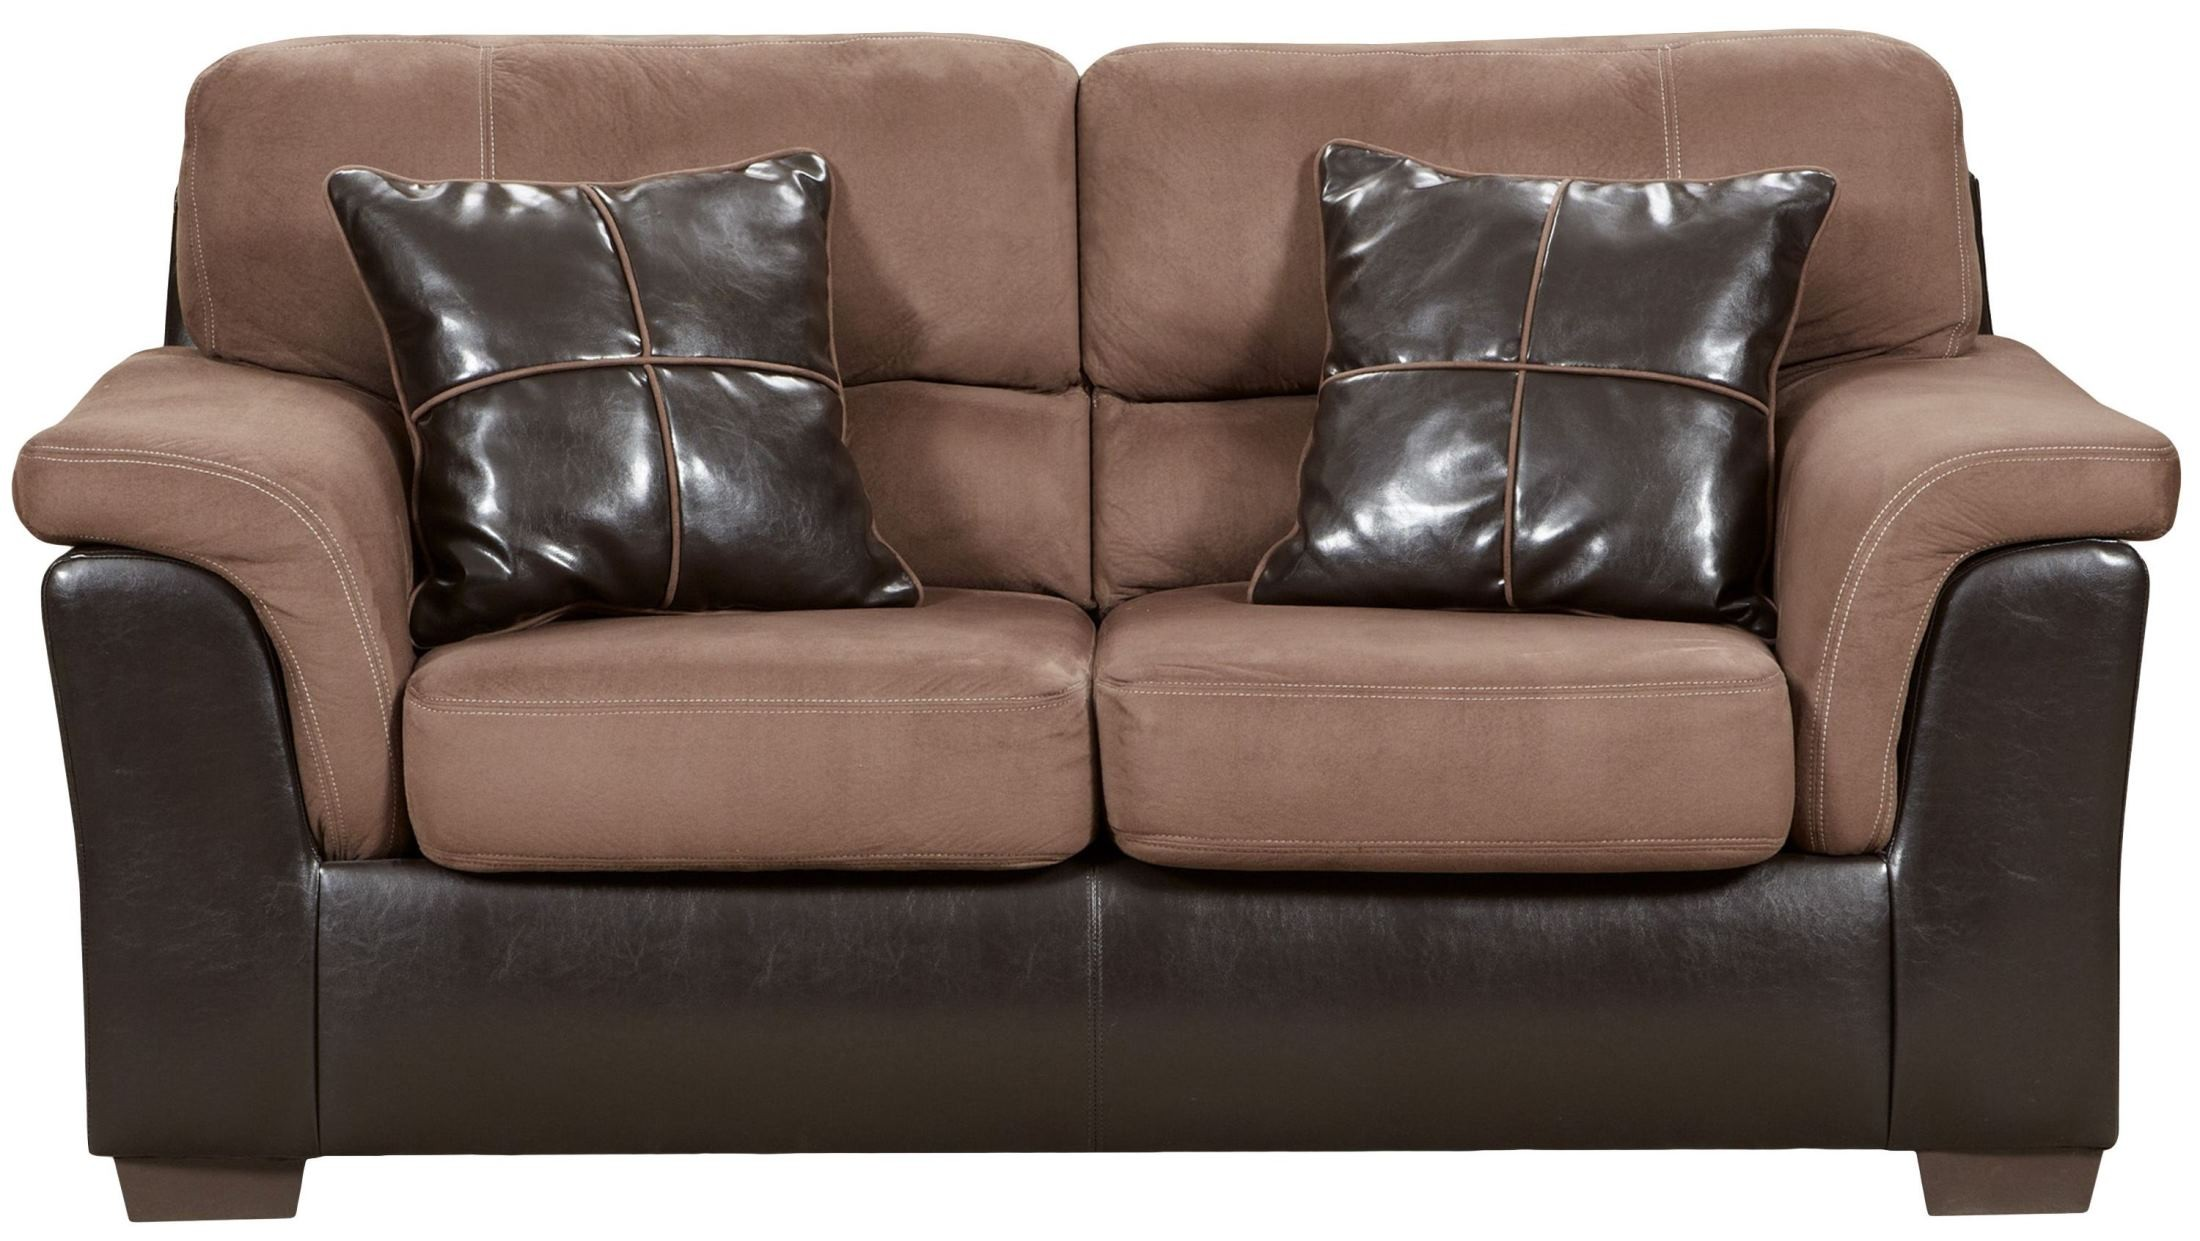 Exceptional Designs Laredo Chocolate Microfiber Loveseat From Renegade Coleman Furniture